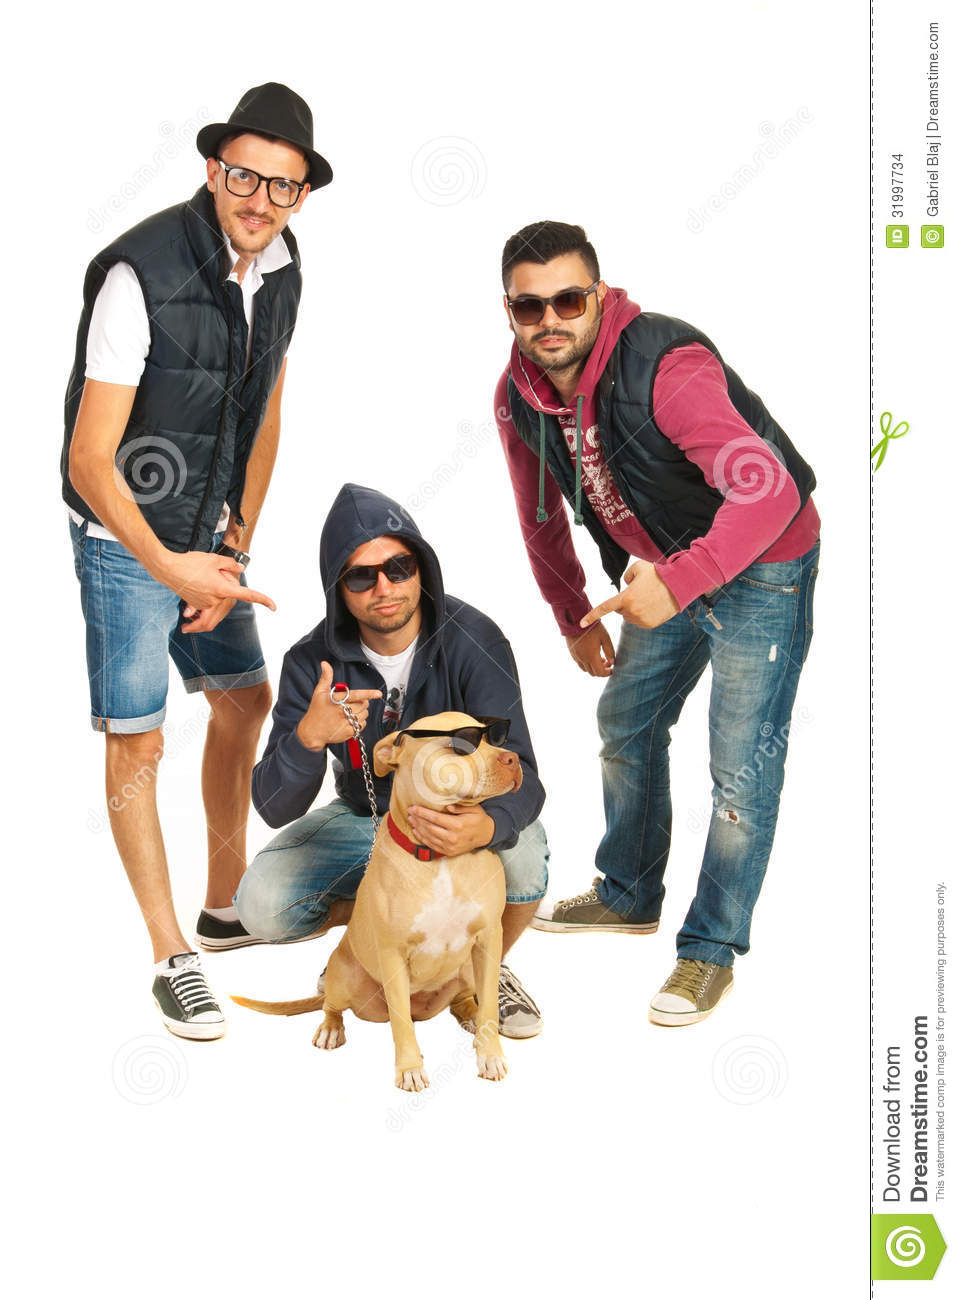 27e9fa0f2ee5 Funky group of three rappers pointing to their pitbull dog with sunglasses  isolated on white background